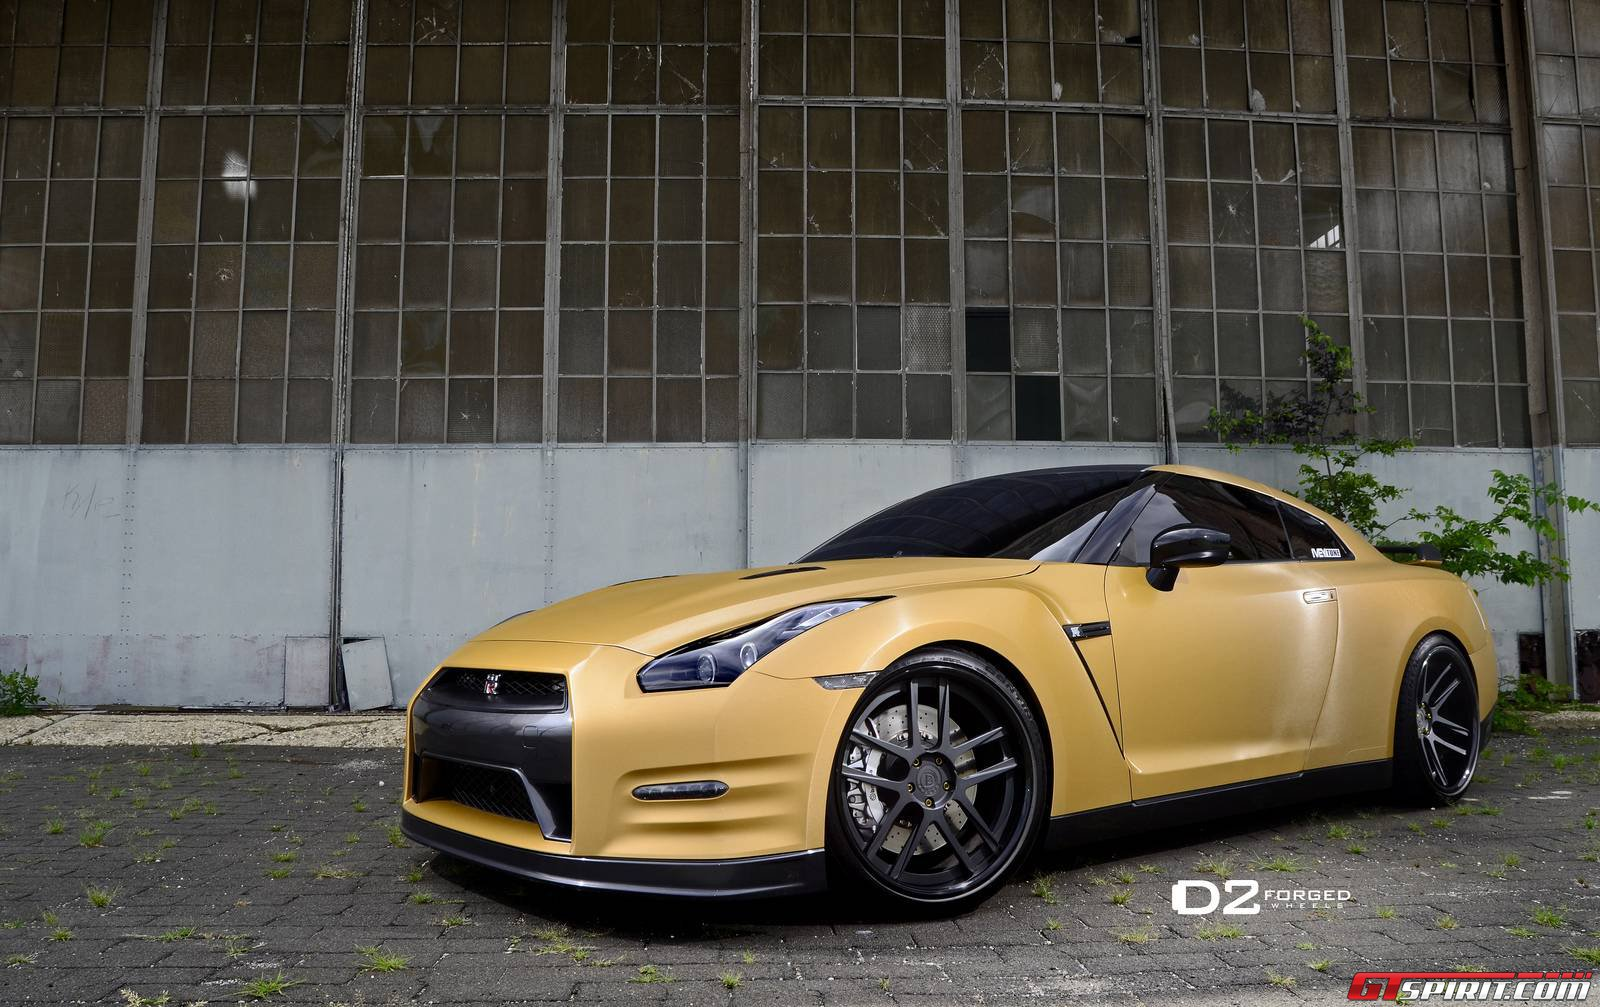 Gold Wrapped Nissan GT-R with 21-inch D2Forged Wheels ...